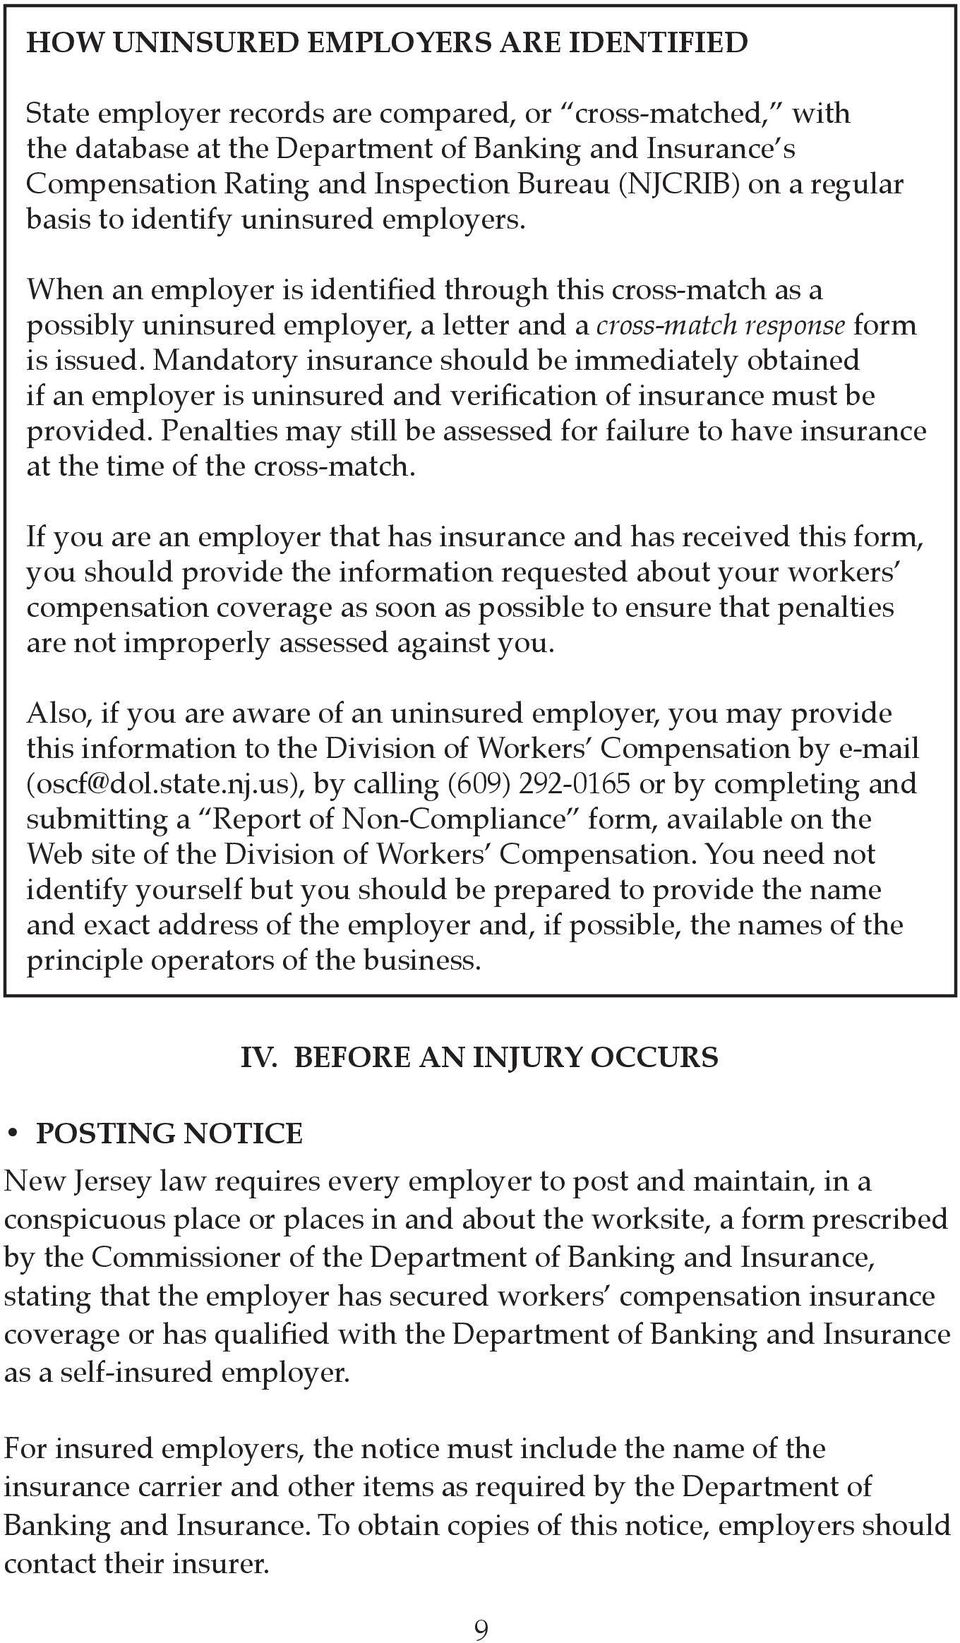 When an employer is identified through this cross-match as a possibly uninsured employer, a letter and a cross-match response form is issued.